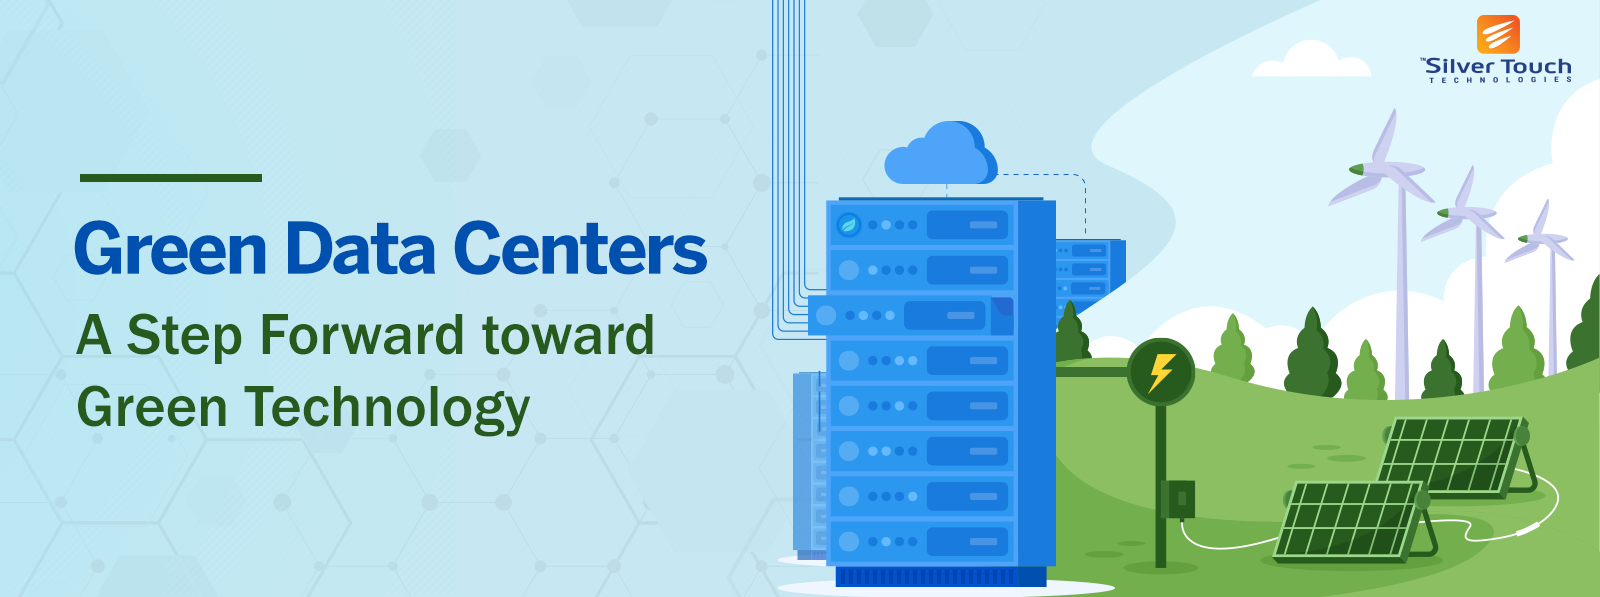 Green-Data-Centers--A-Step-Forward-toward-Green-Technology